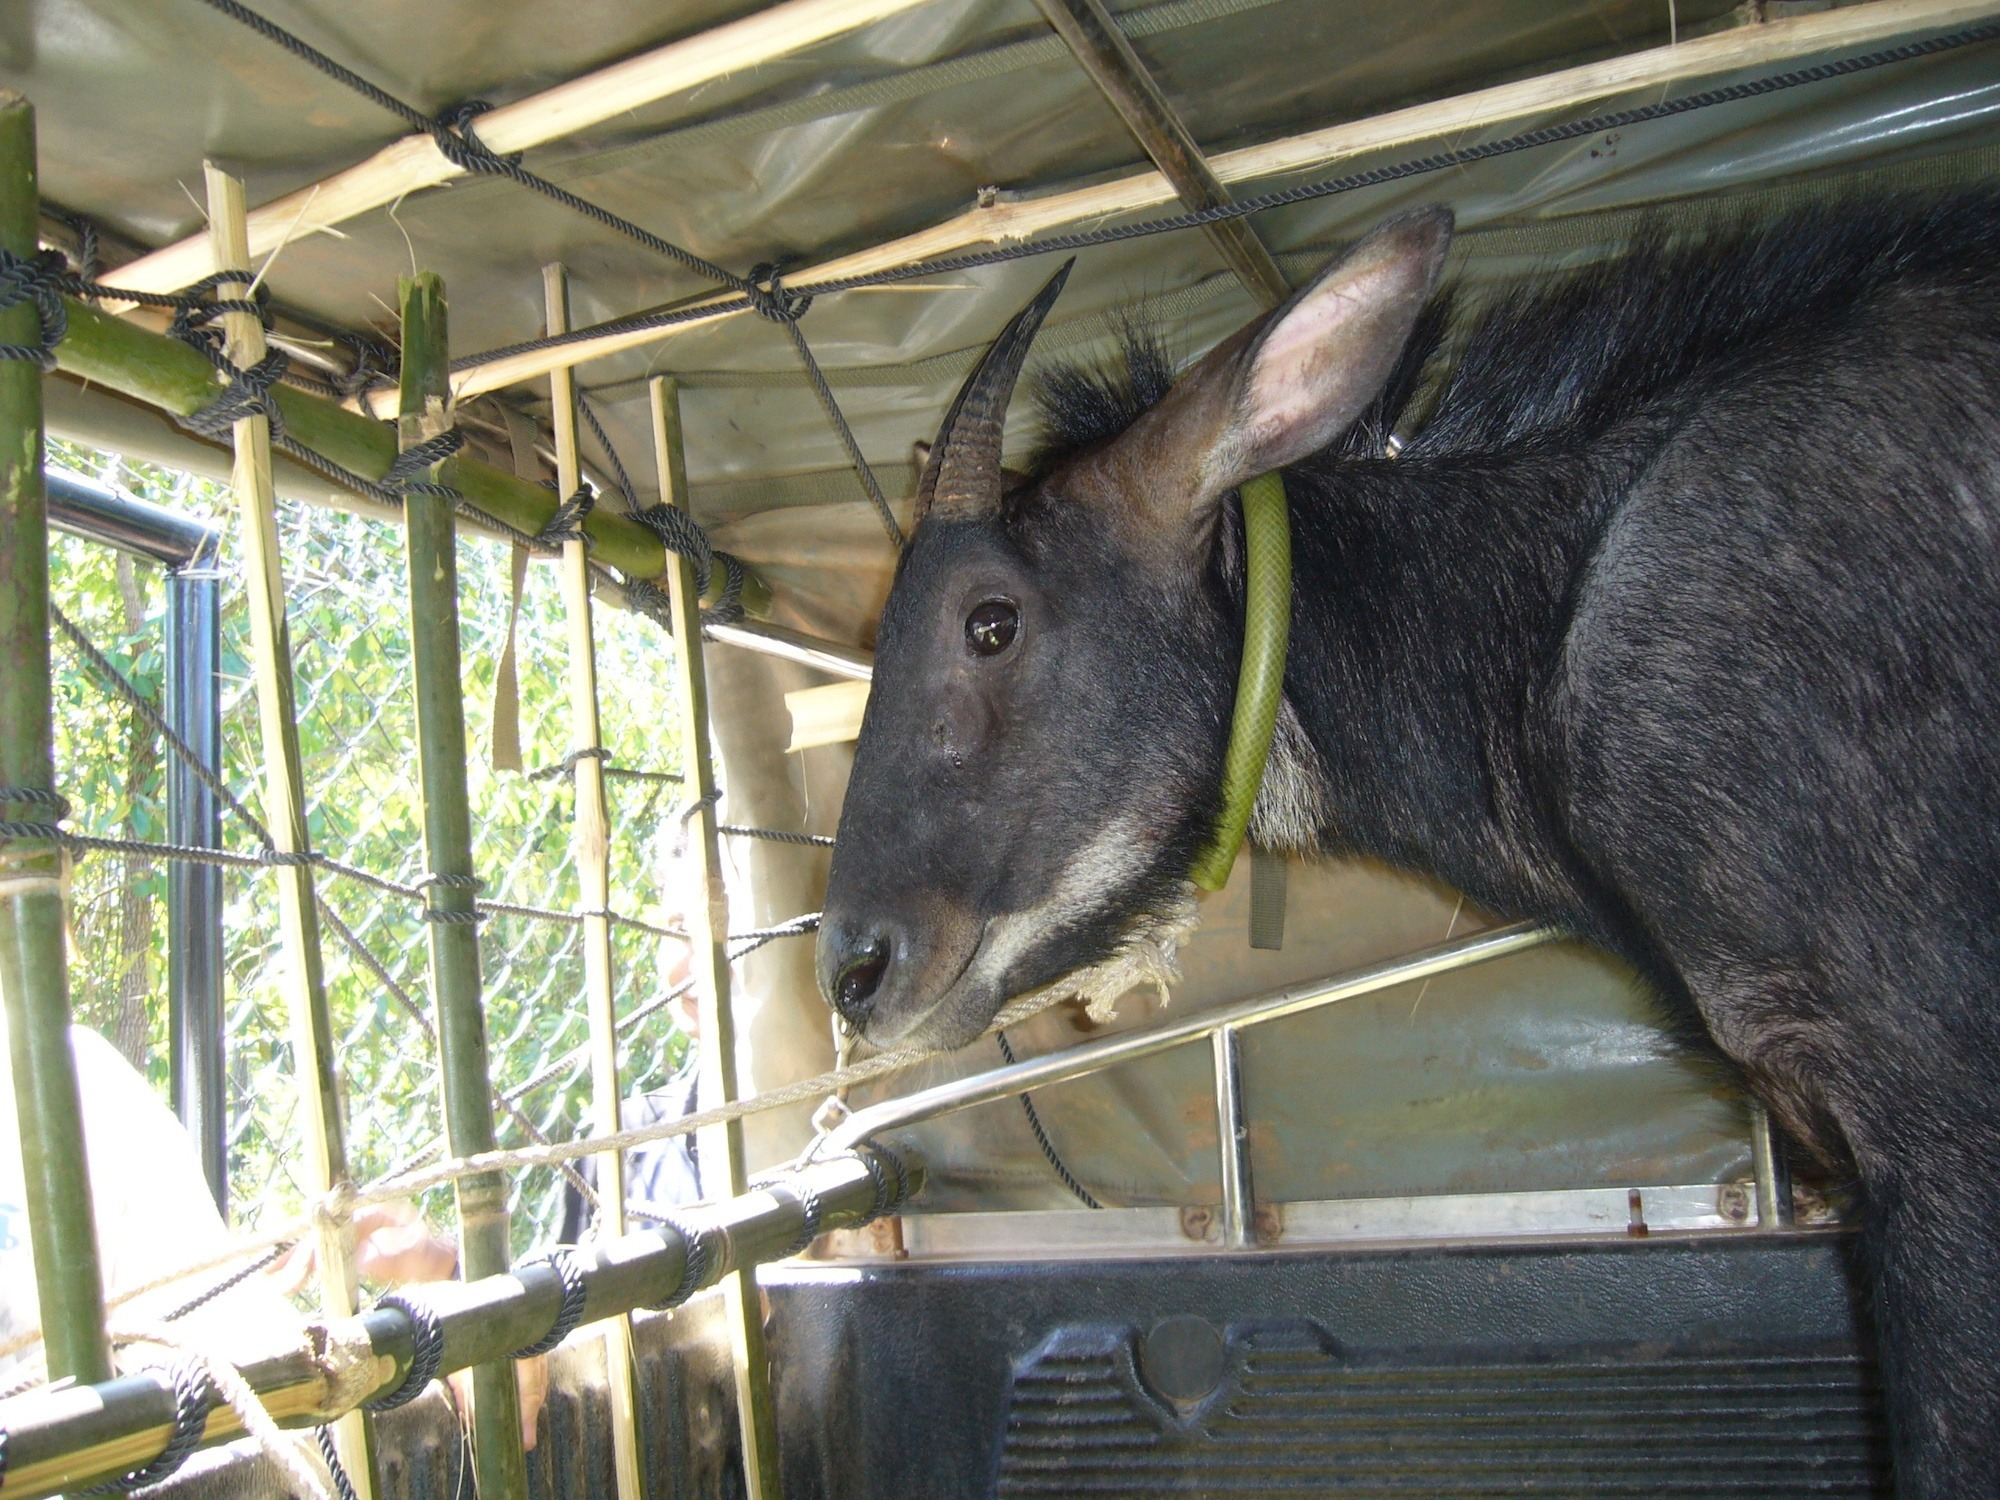 The head and shoulders are shown of a serow being transported in the back of a pickup enclosed in a large bamboo structure.